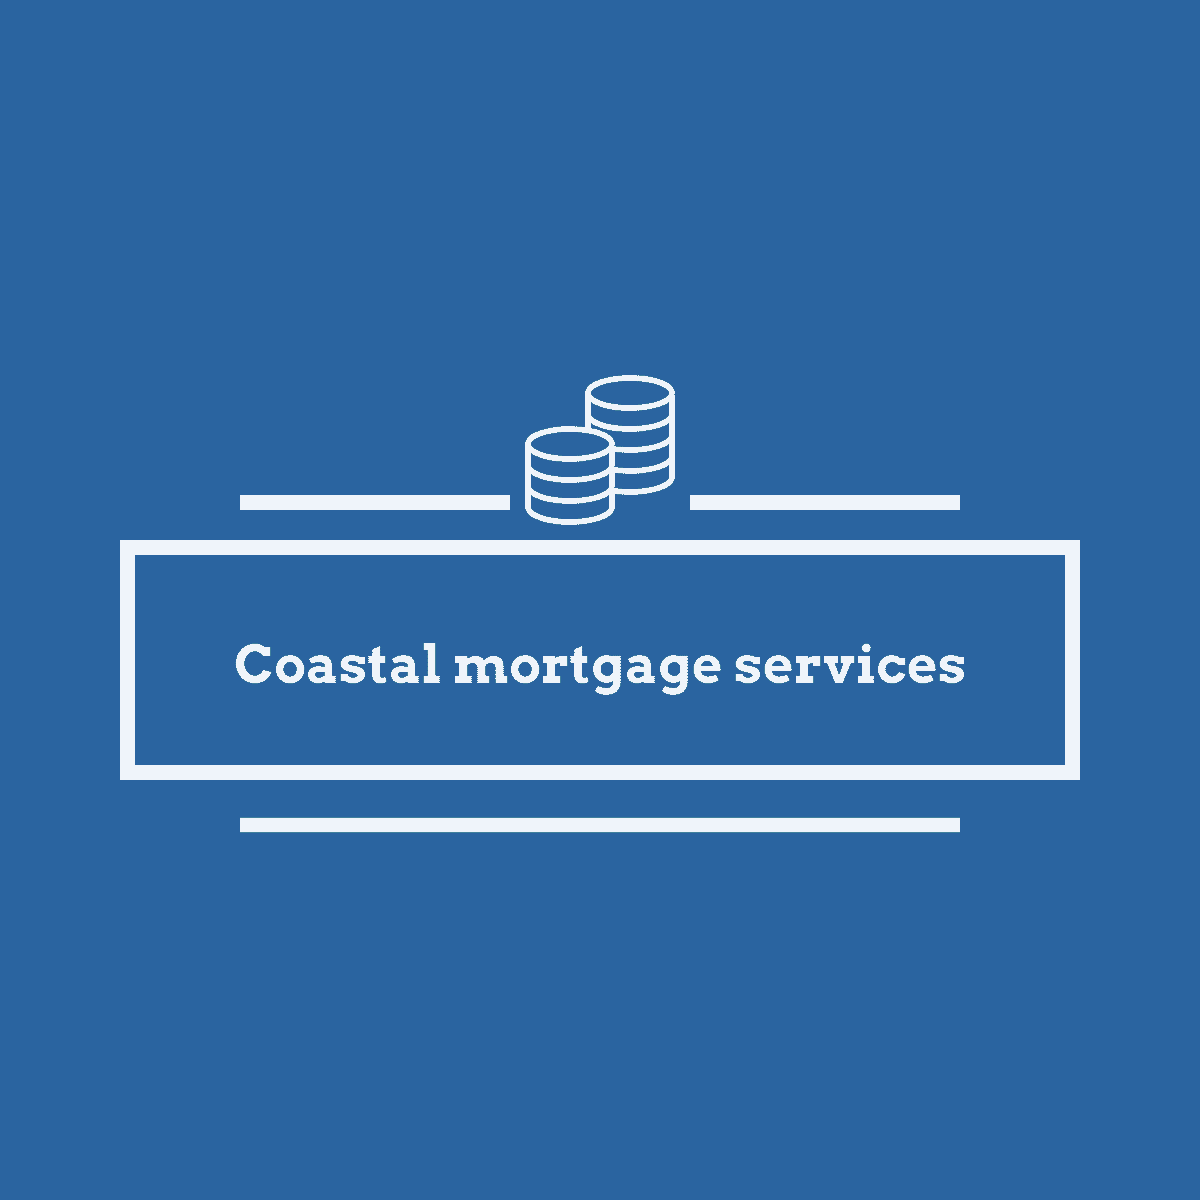 Coastalmortgageservices